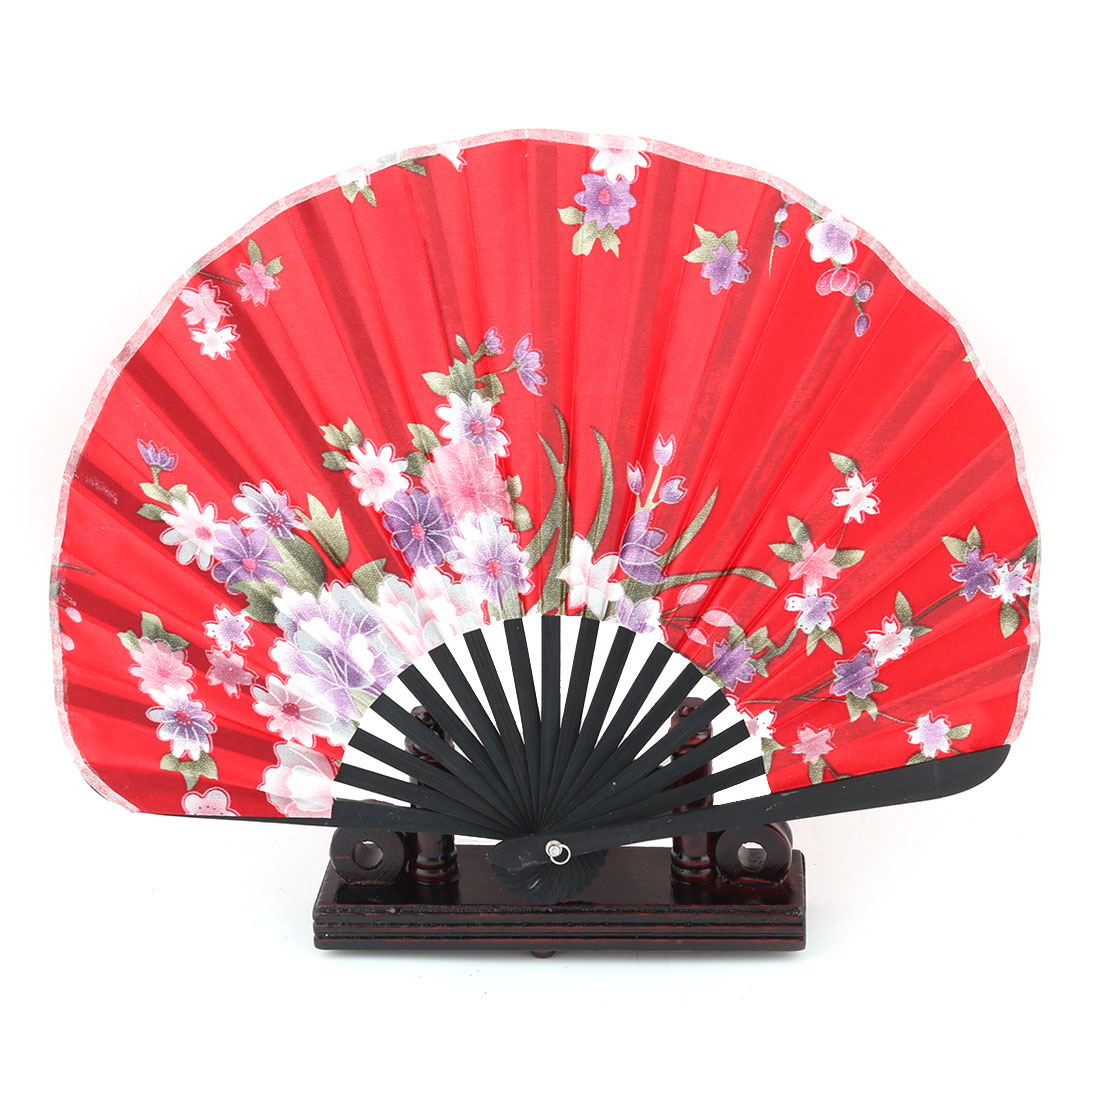 Dance Bamboo Flower Pattern Cooling Folding Hand Fan Display Holder Red 2 in 1